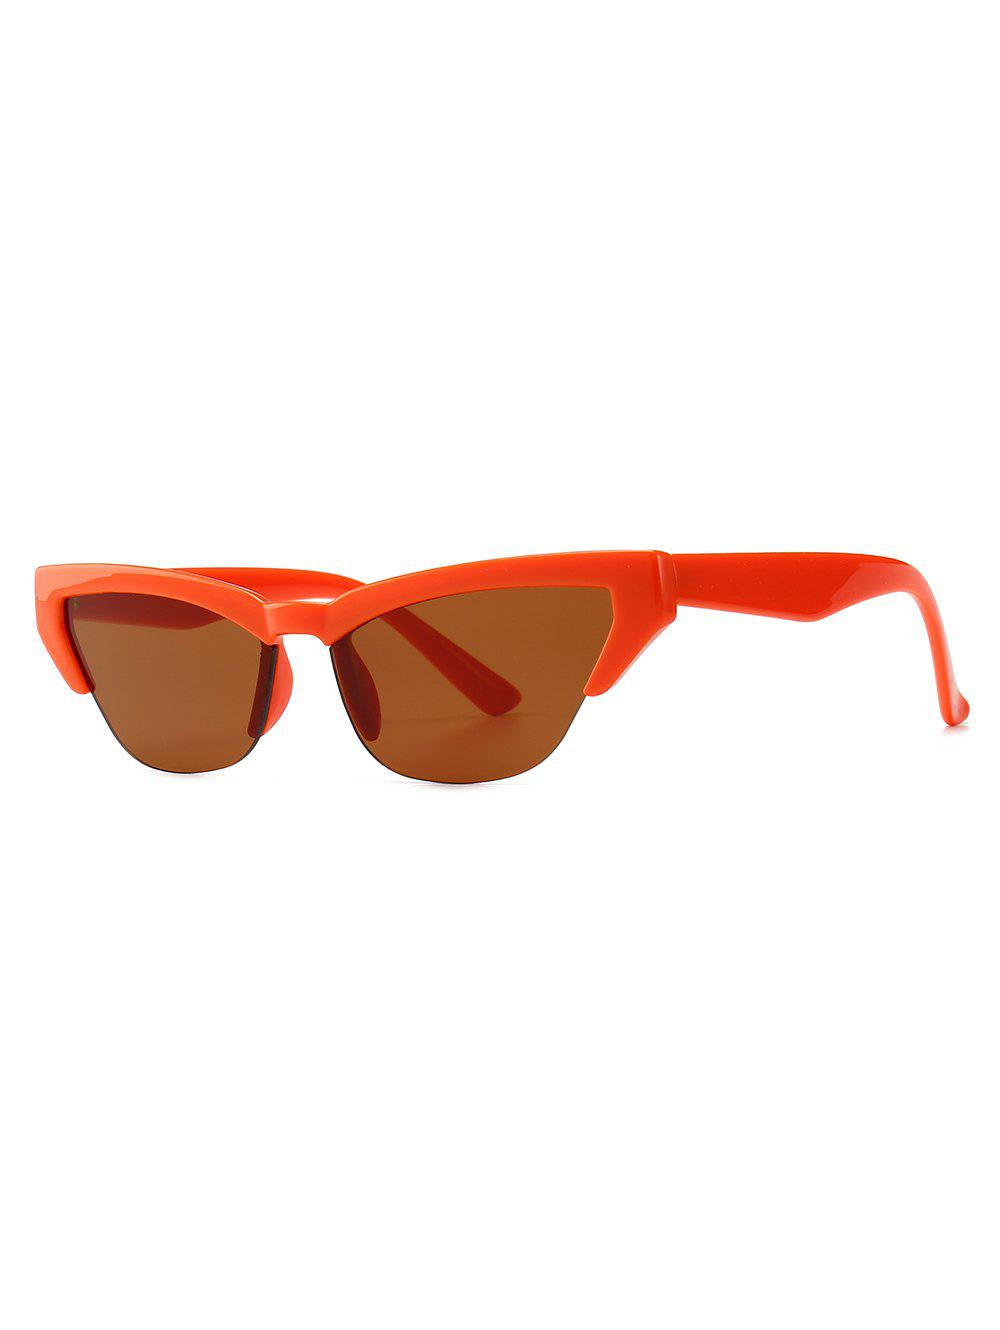 Discount Chic Cat Eye Sunglasses